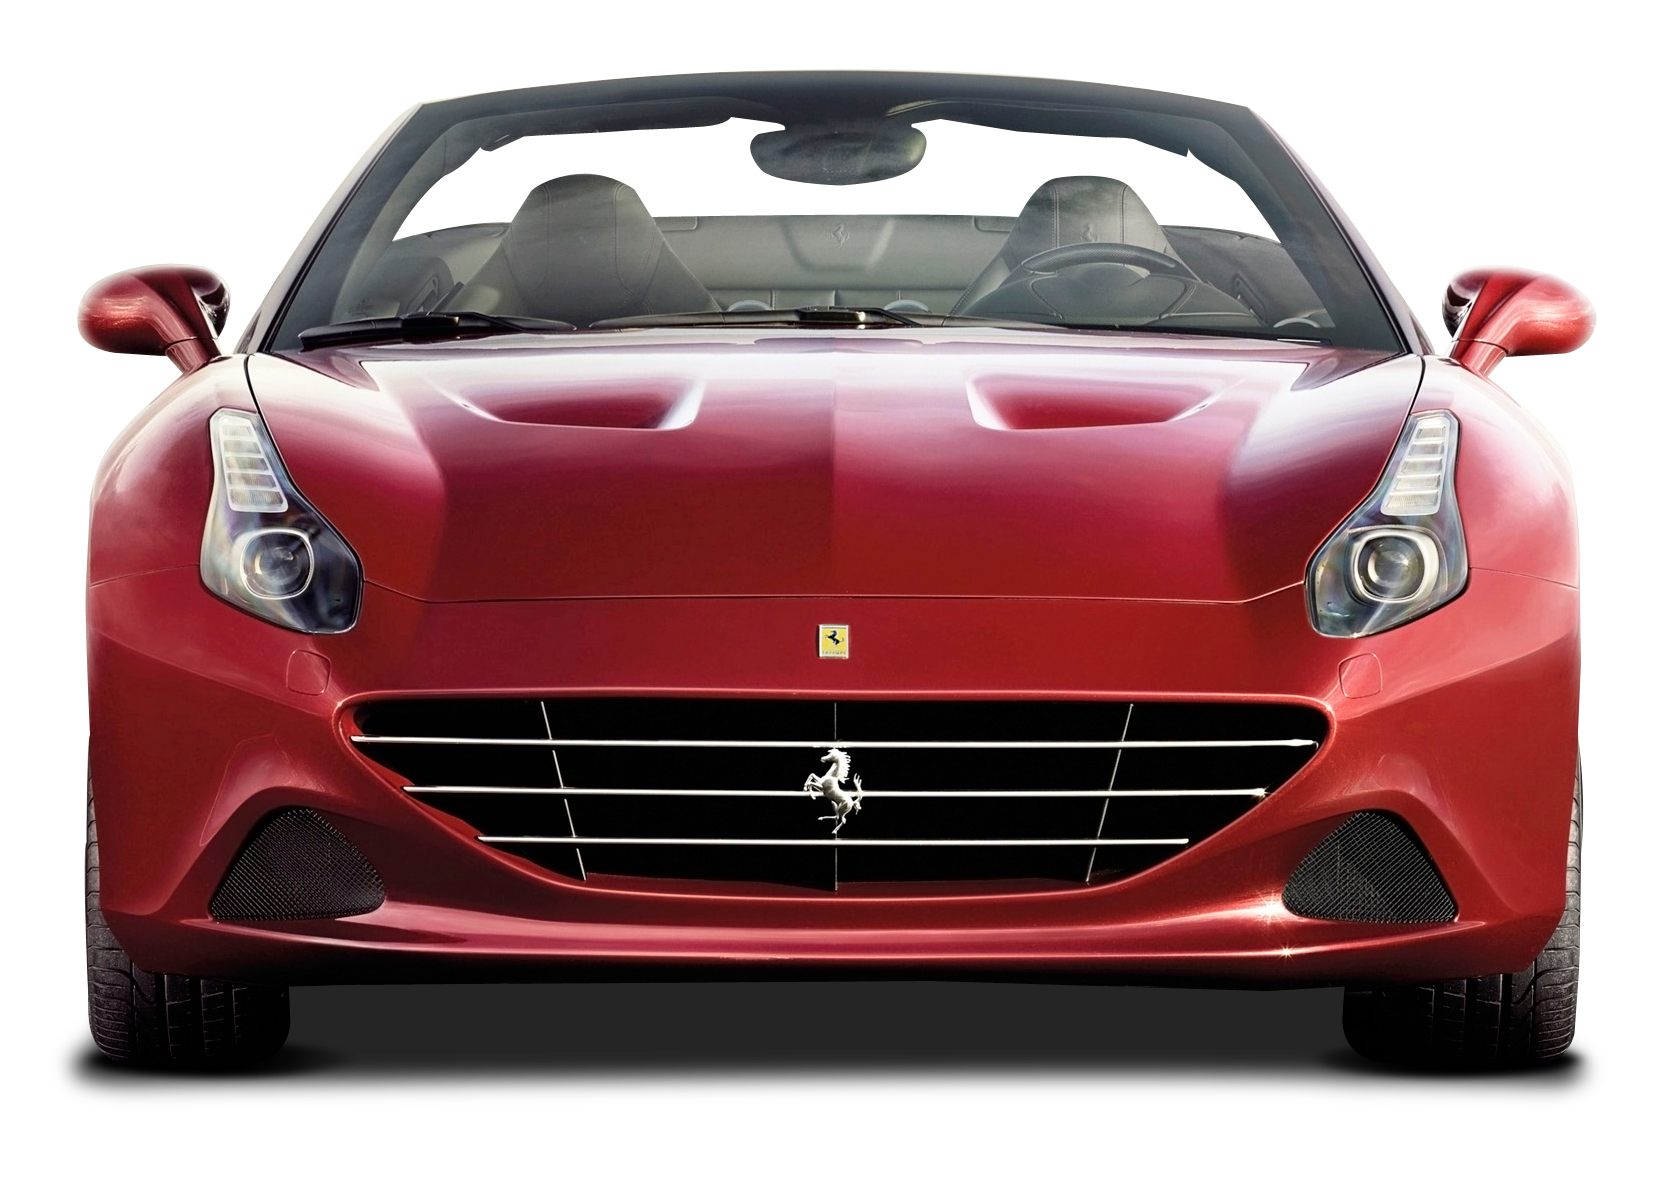 Car inside clipart clipart royalty free stock Greg's Auto Detailing - Sarnia and Lambton County's Best Car ... clipart royalty free stock